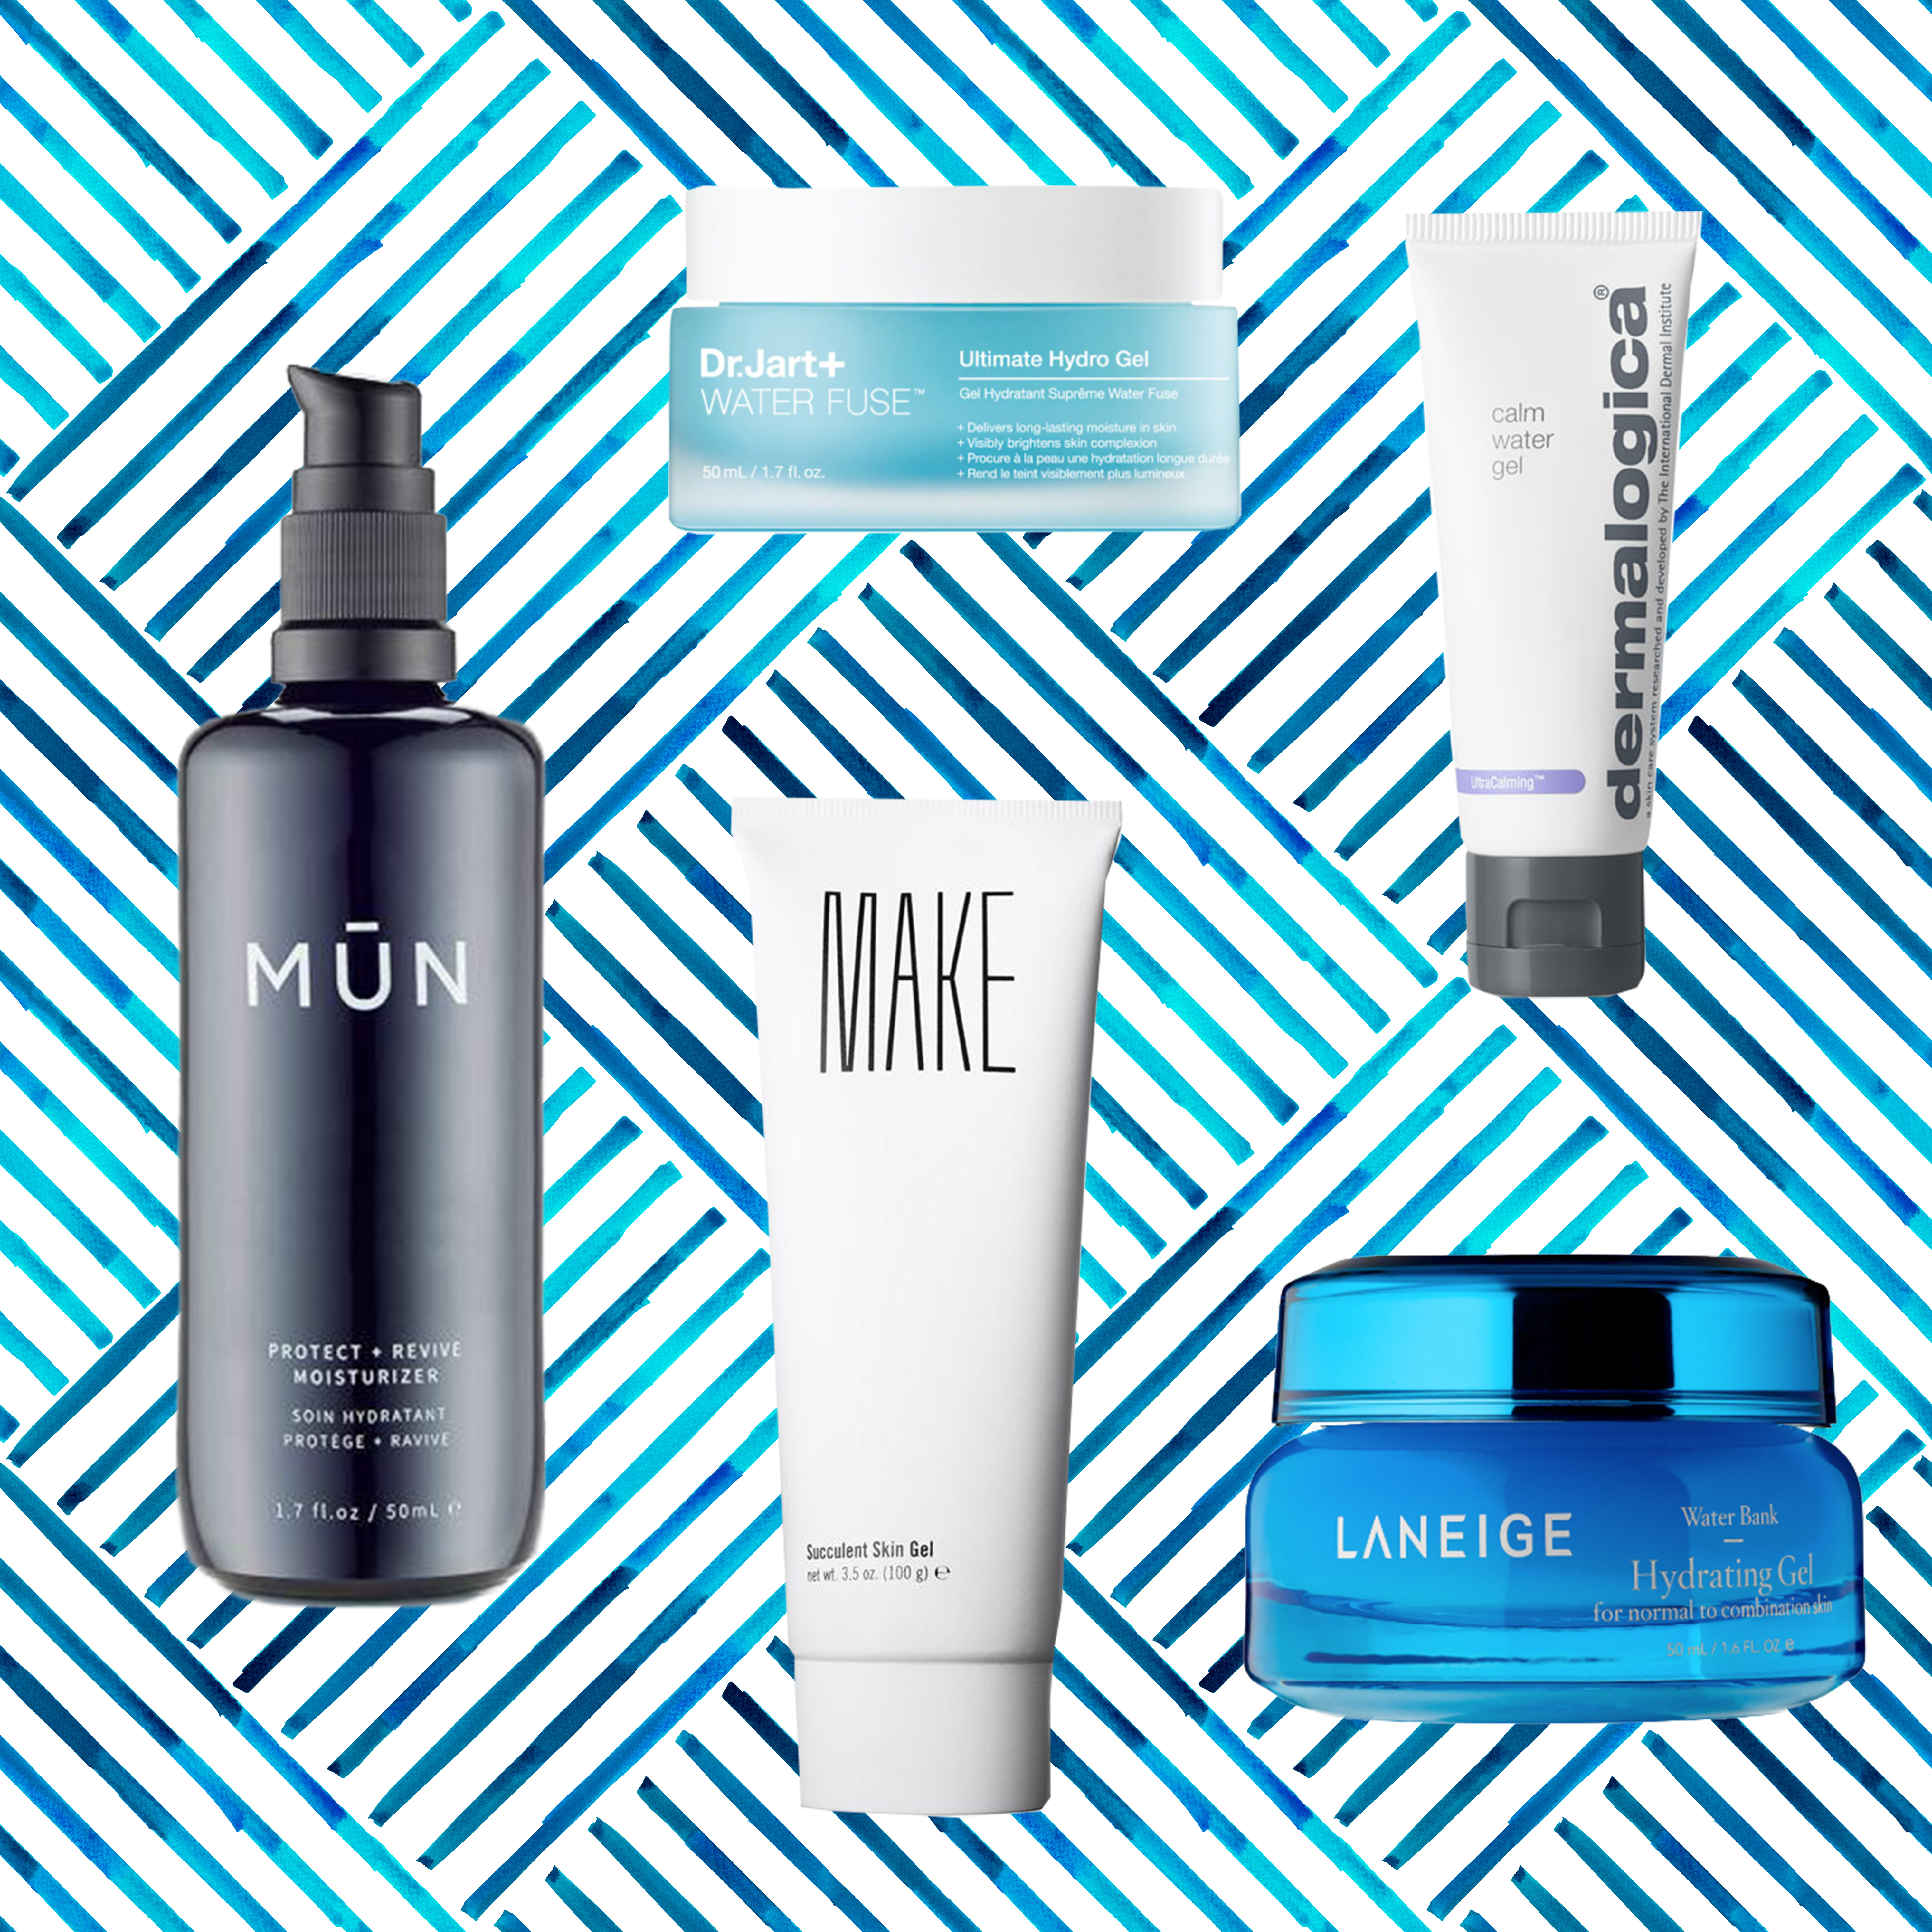 10 of the Best Gel Moisturizers for Oily Skin